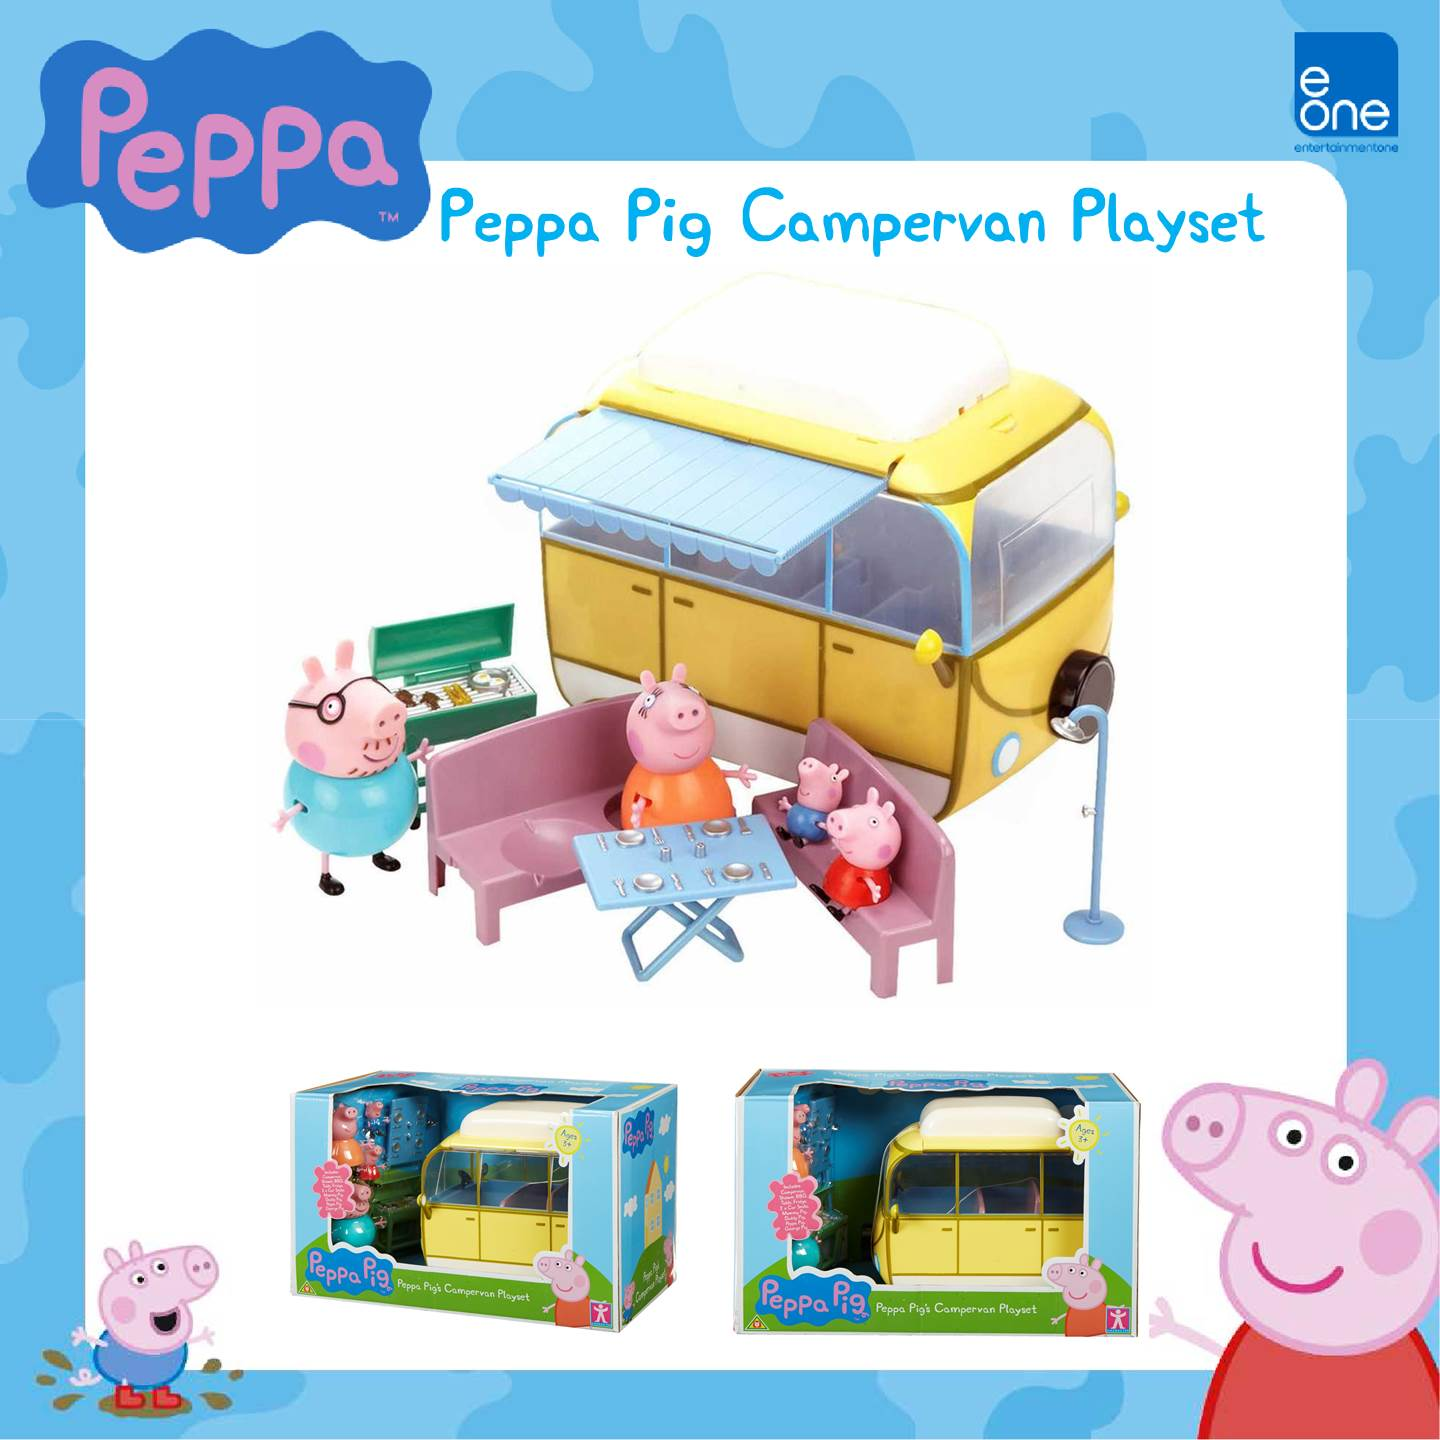 PP120533200000 Peppa Pig Campervan Play Set (7)